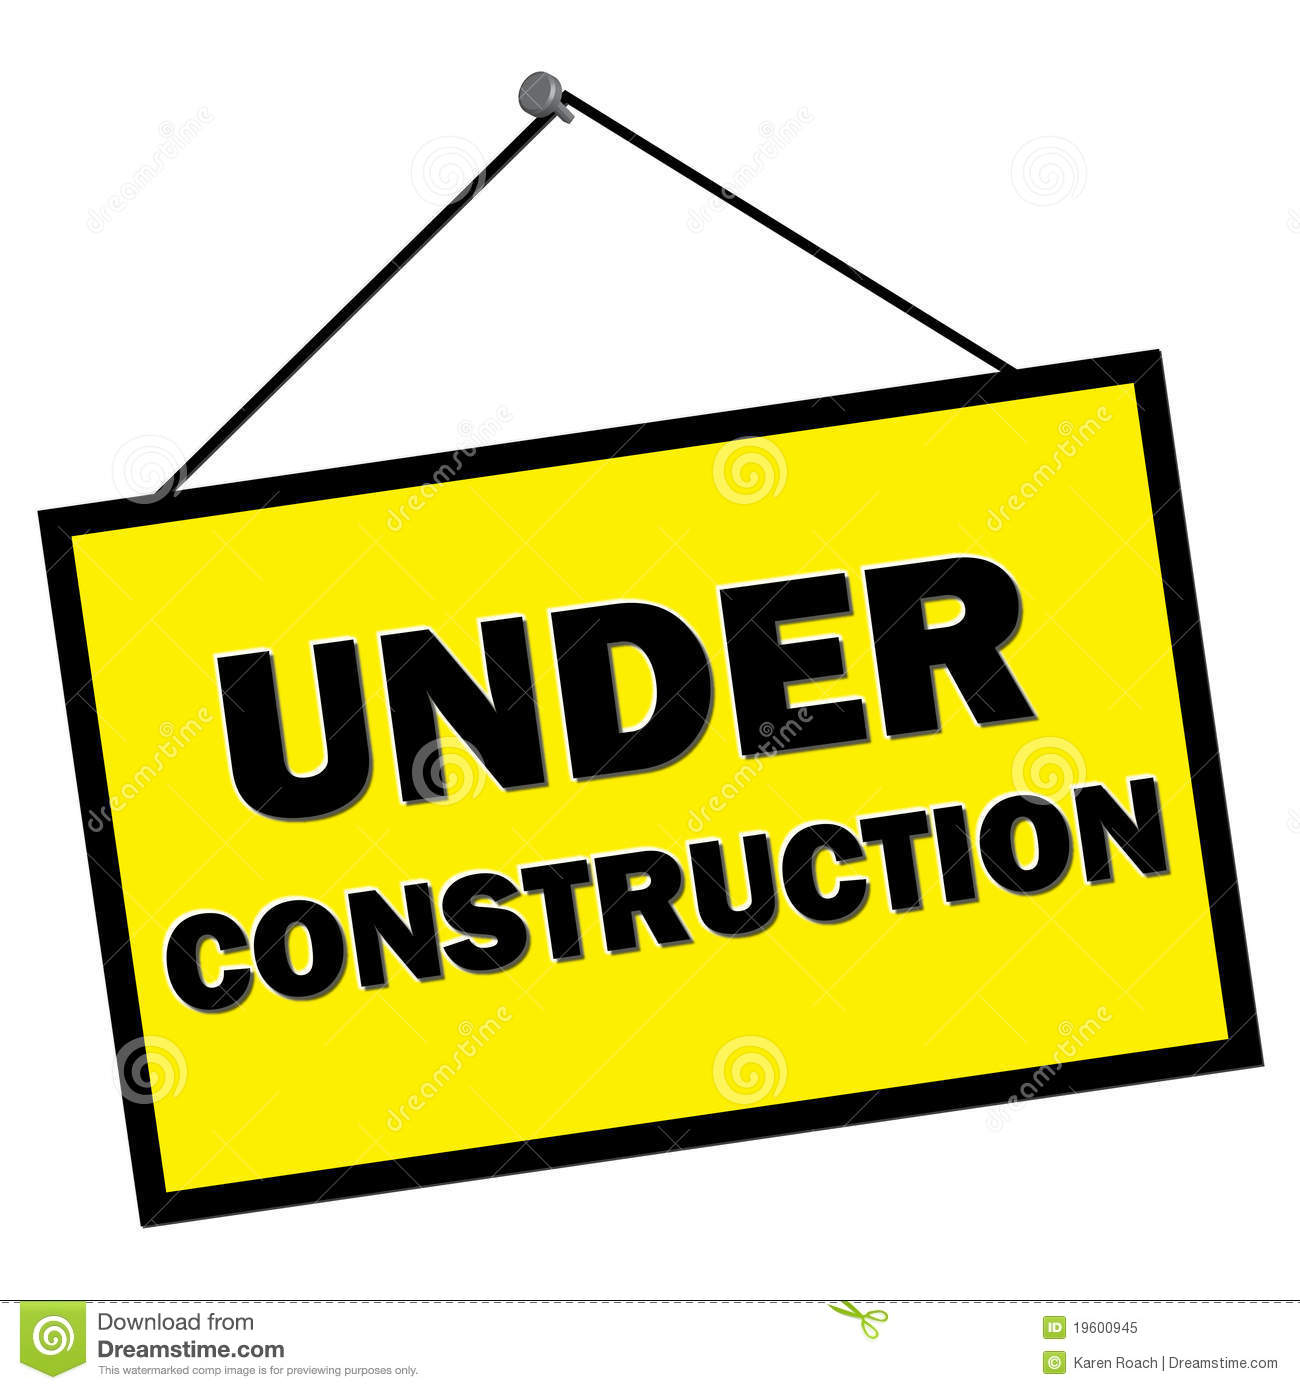 Under construction sign clipart vector library stock Under construction sign clipart 3 » Clipart Station vector library stock